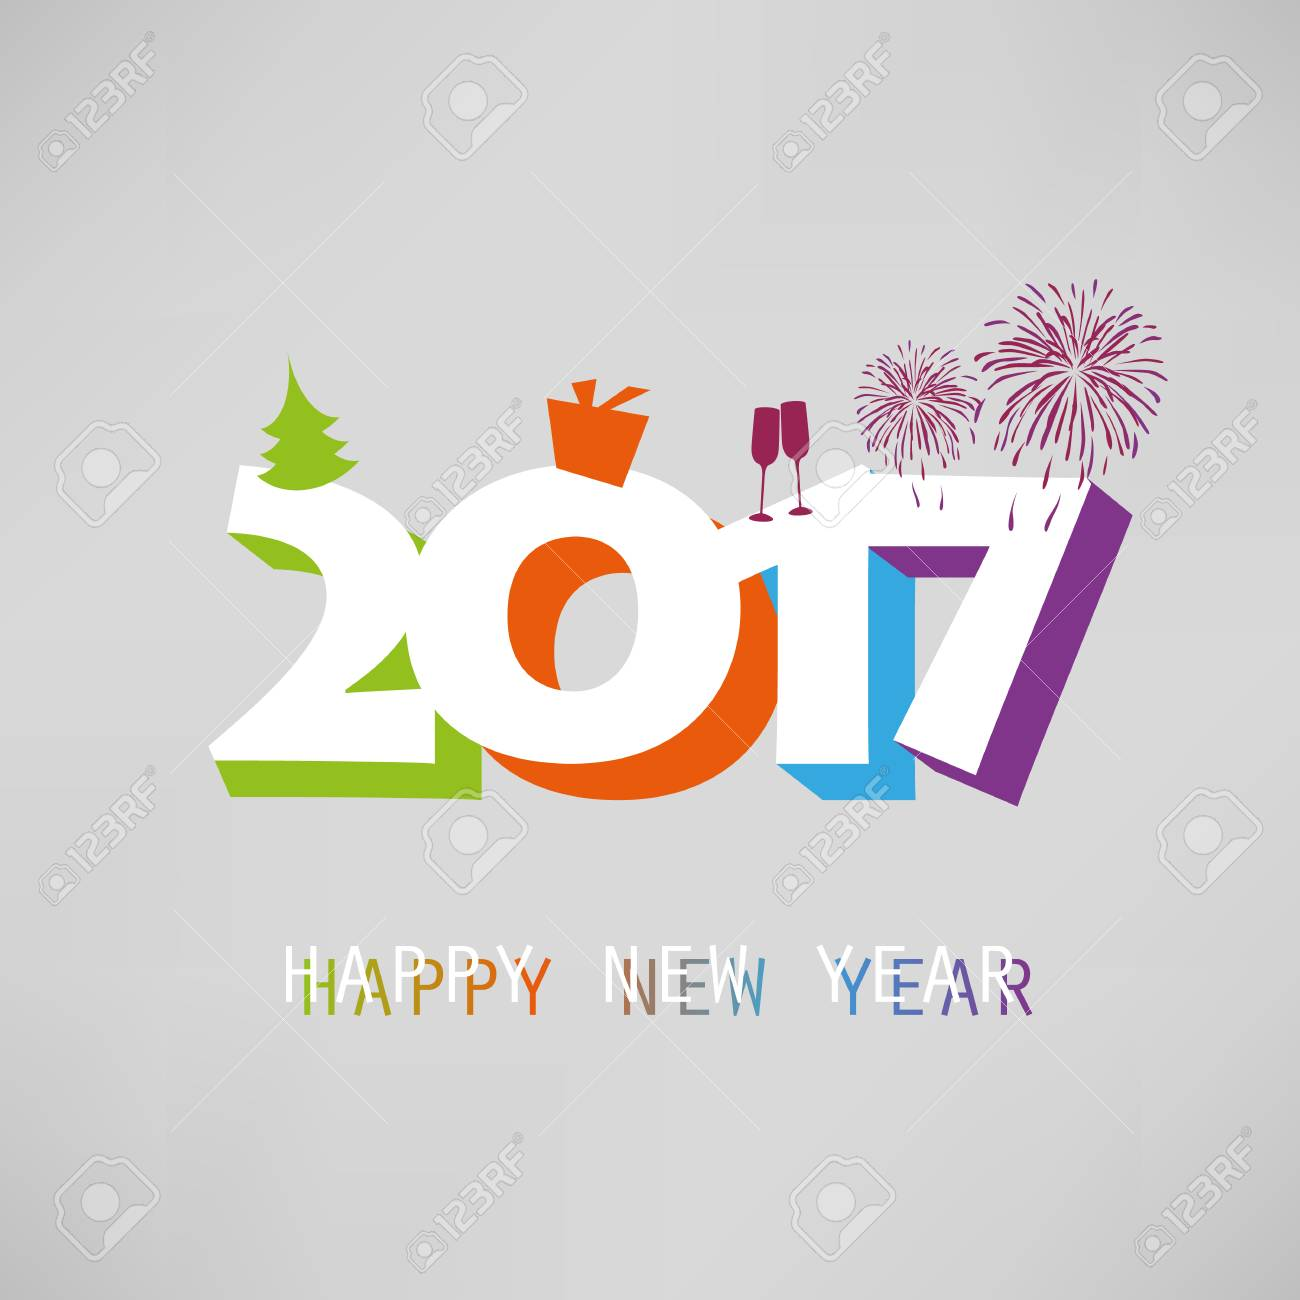 best wishes simple colorful new year card cover or background design template with holiday